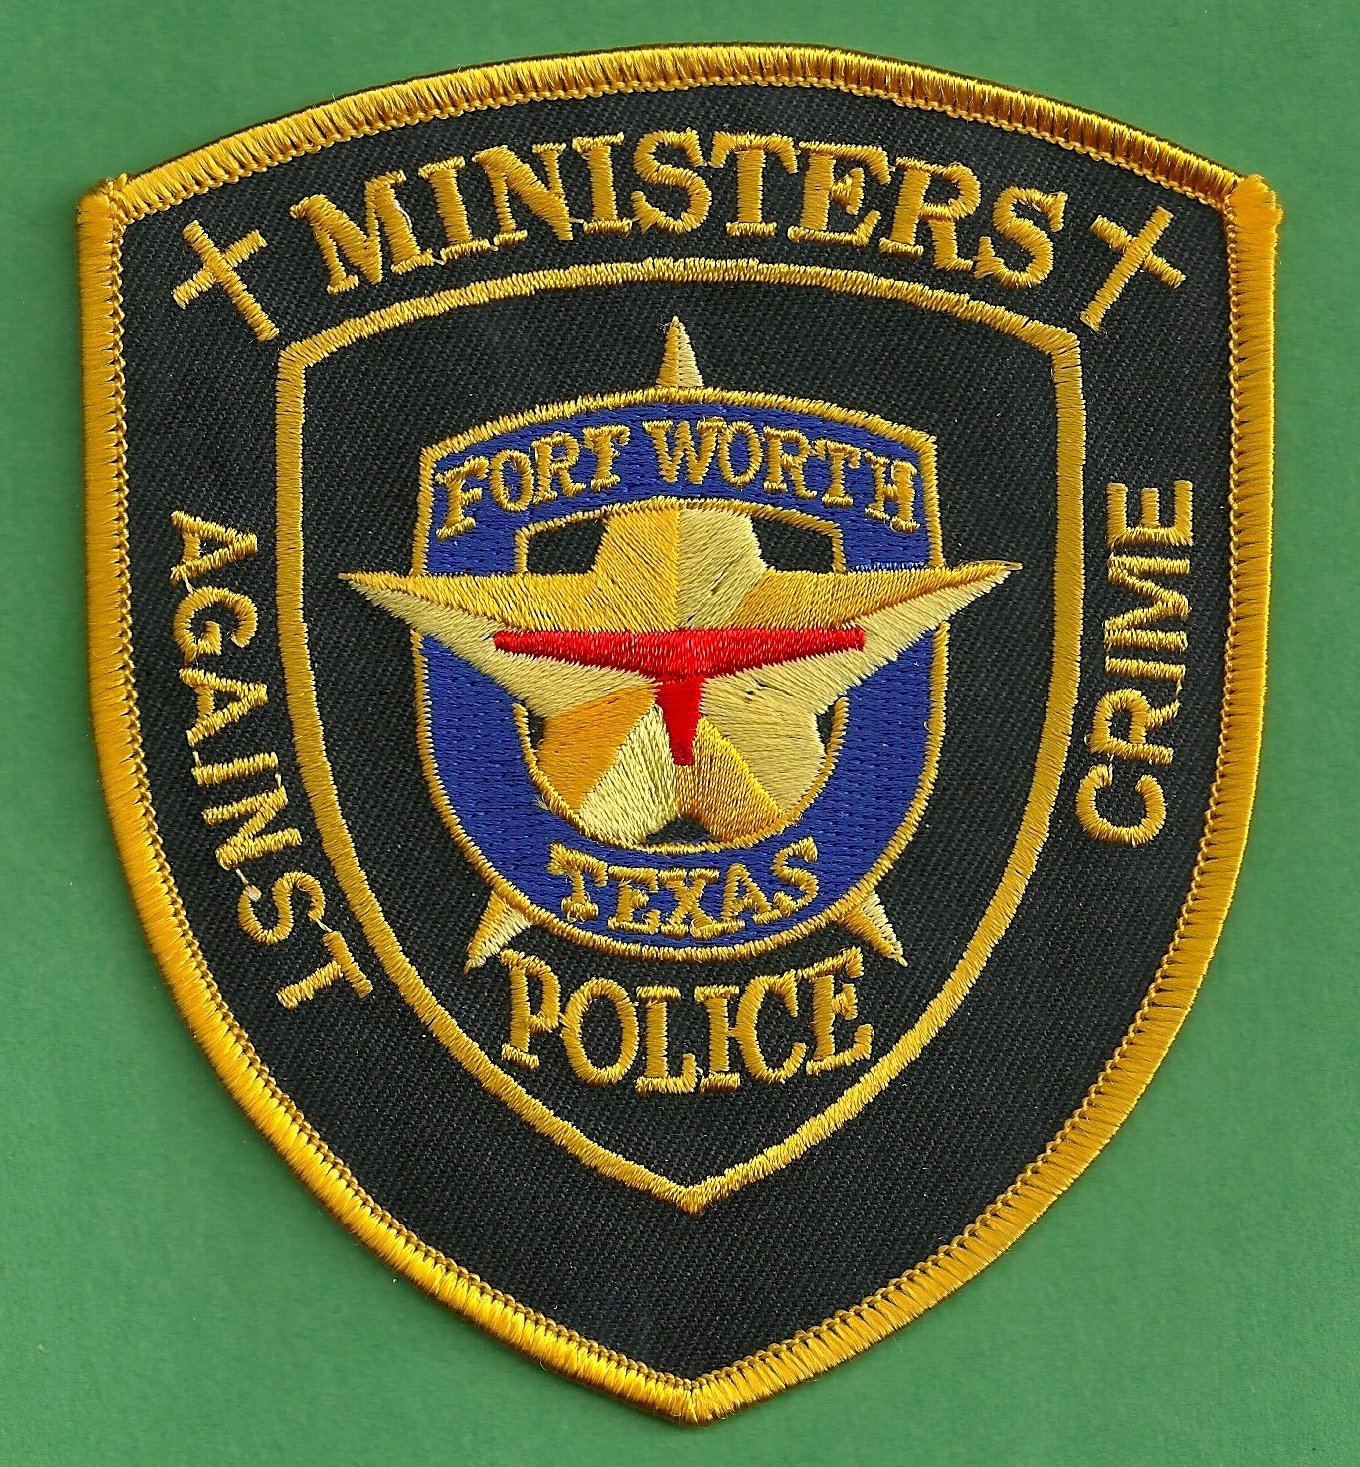 Fort worth texas police ministers against crime patch for Fish store fort worth